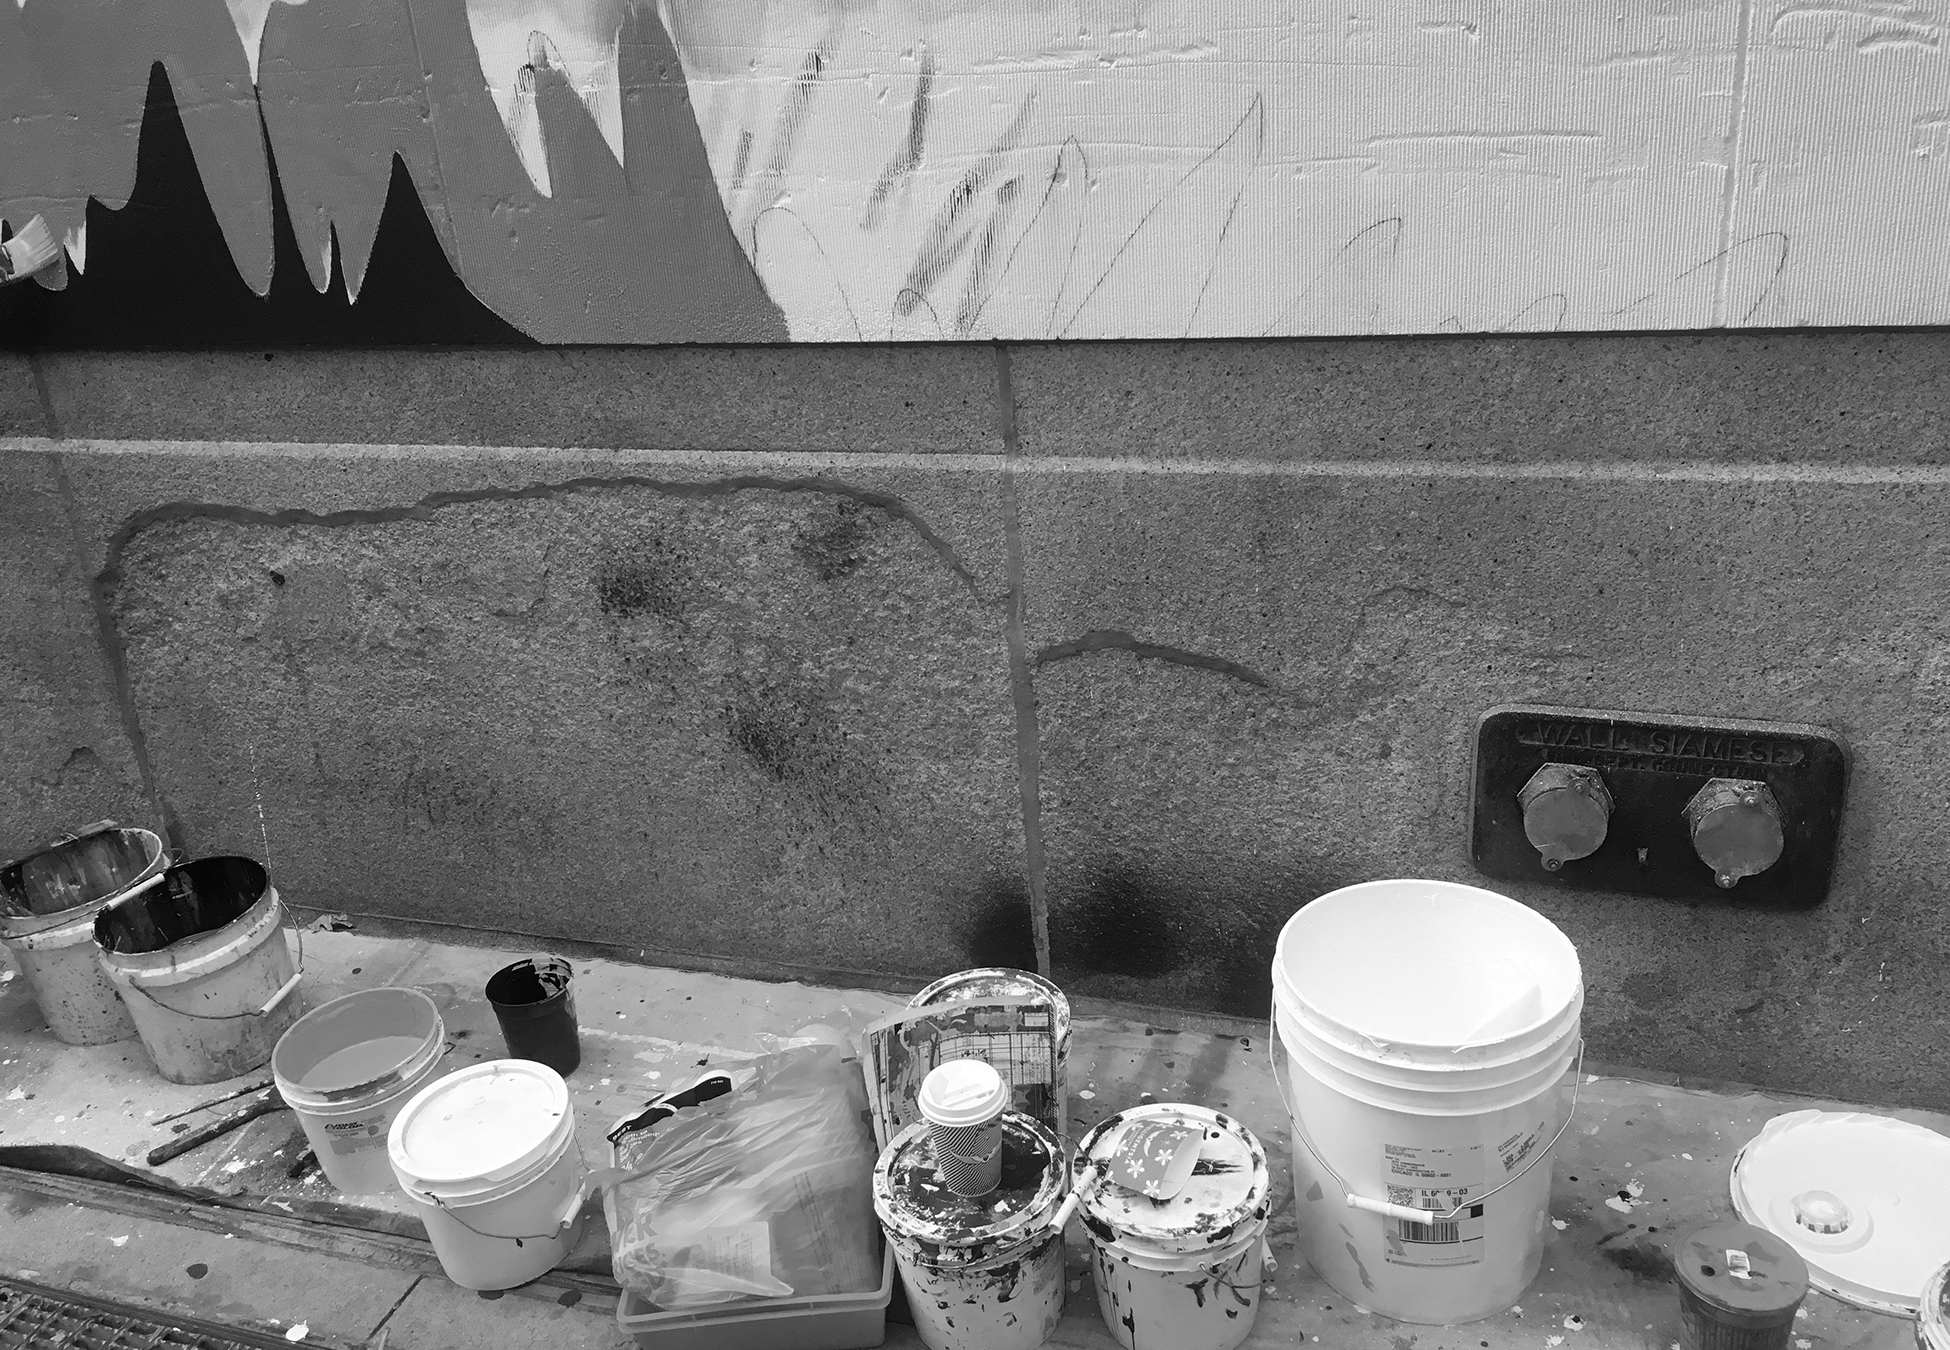 Paint Cans B&W.png